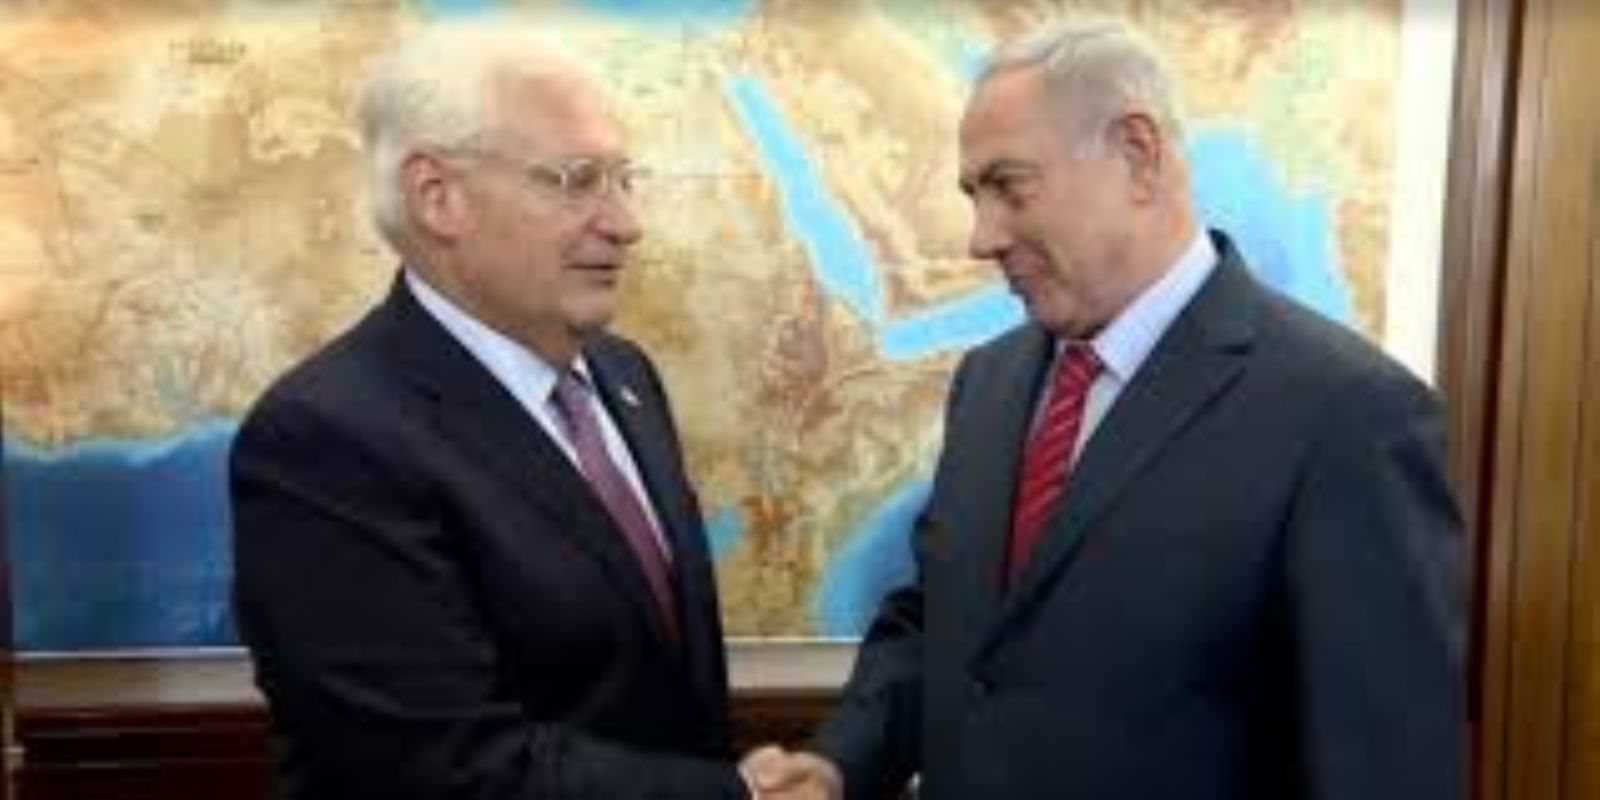 US envoy to Israel: PA is reason there's no peace